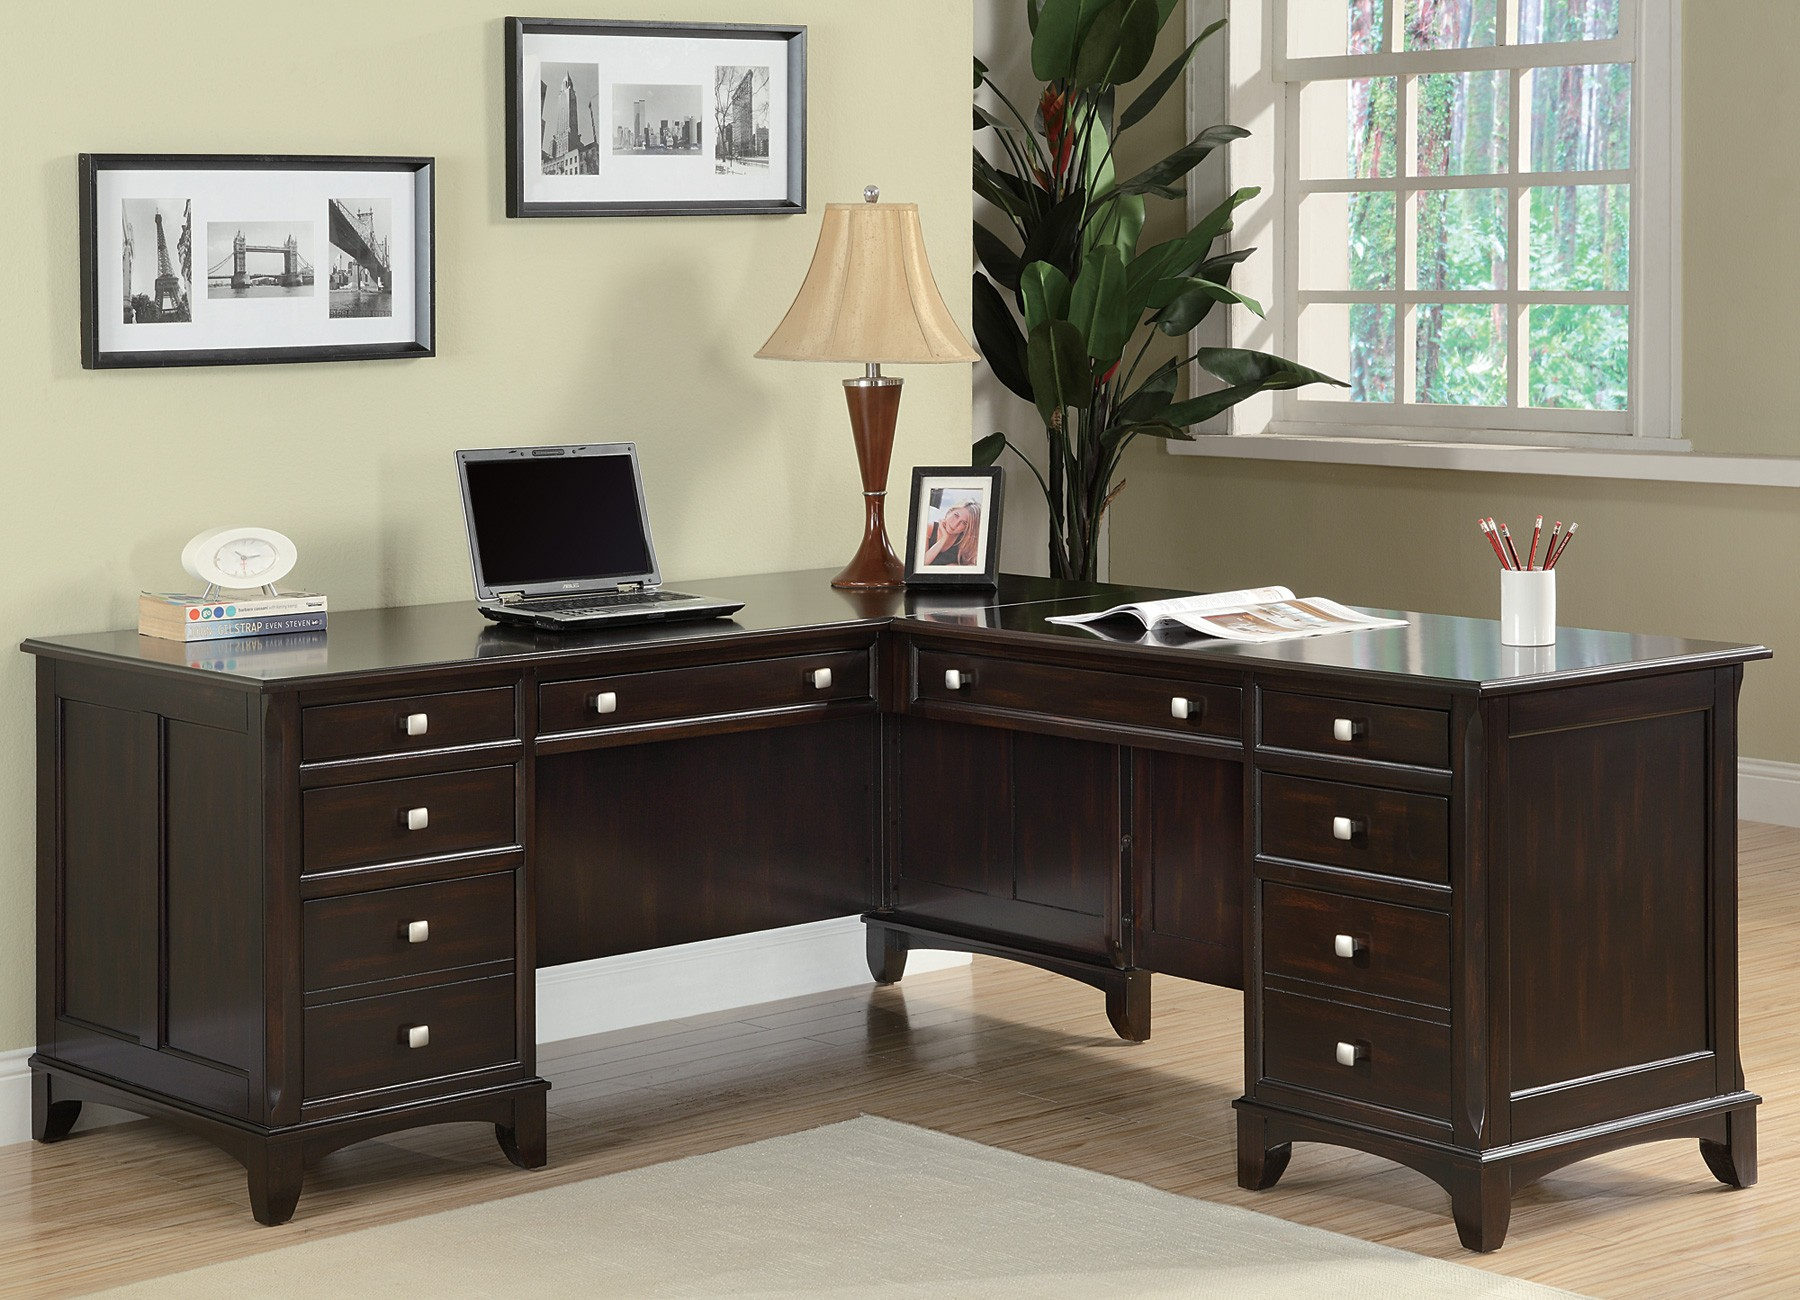 title | Desk For Home Office